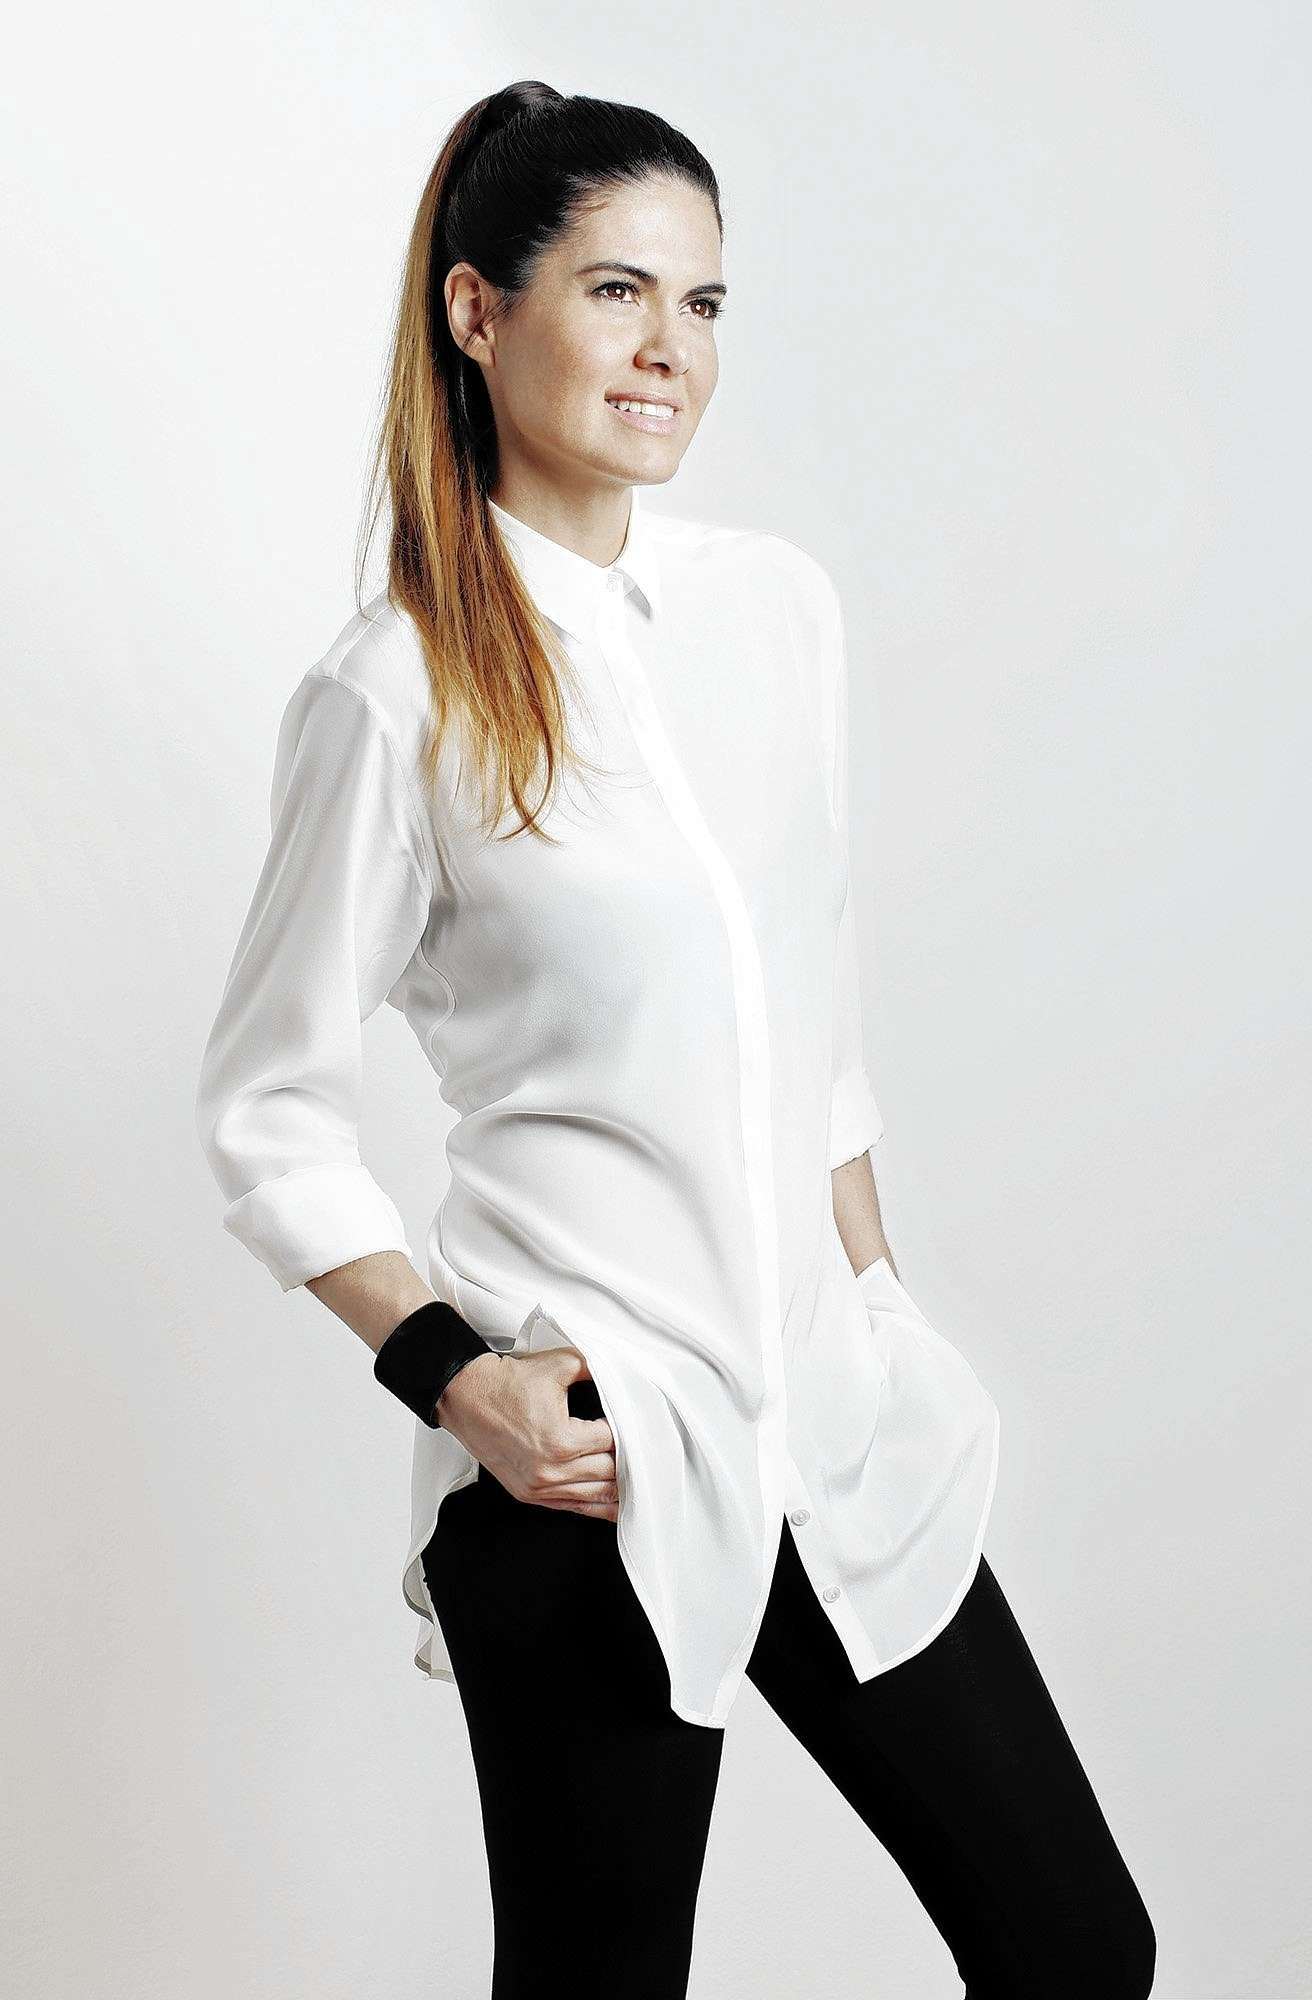 fashion designer anne fontaine expands beyond her classic white shirt